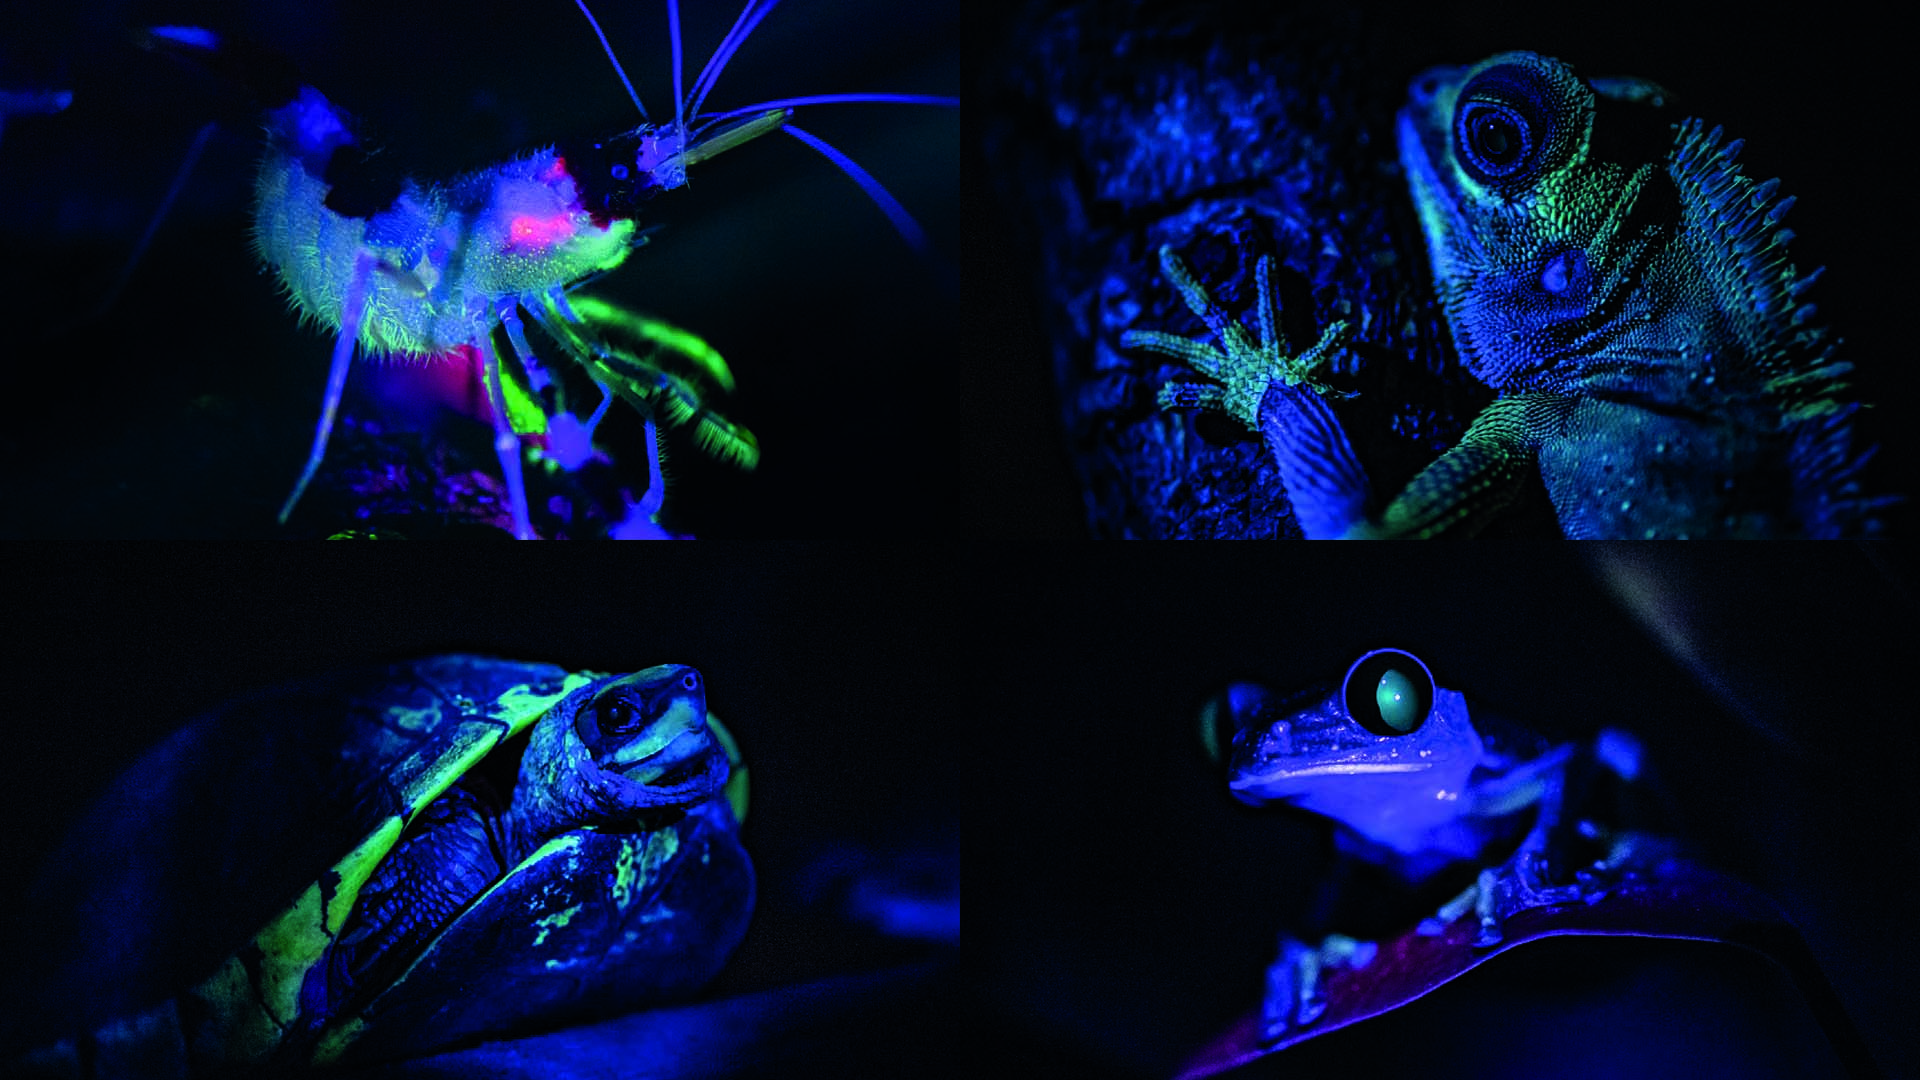 Chester Zoo shares incredible 'glow in the dark' animal images